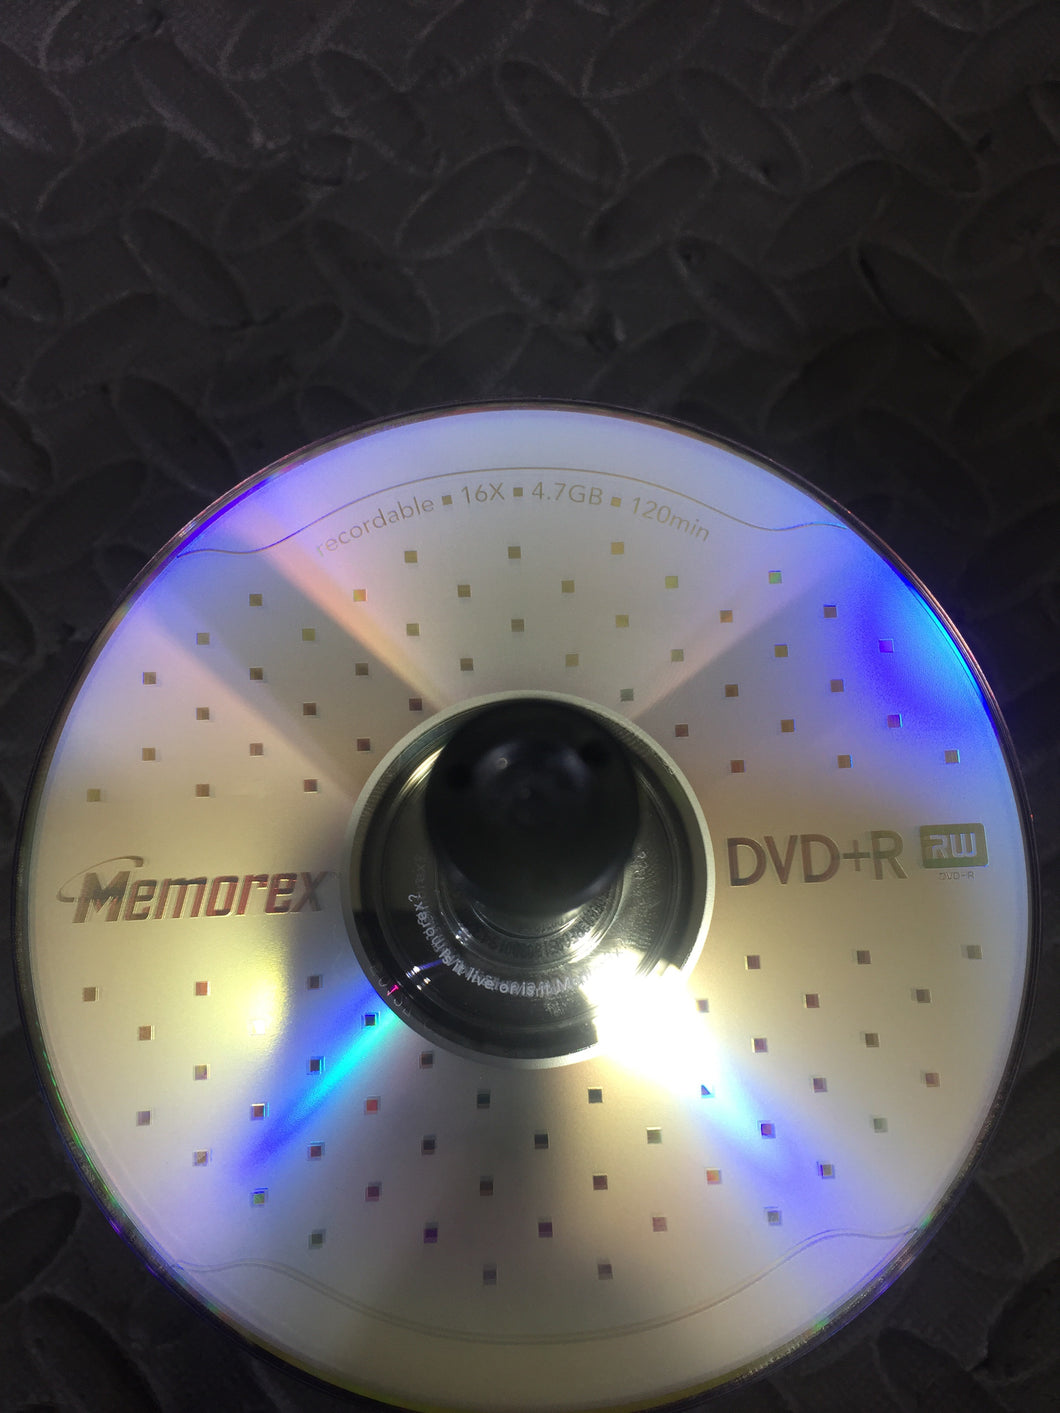 Lot of 59 Unused Memorex DVD+R 4.7GB Data Disks W/ Case! - AsIsStuff